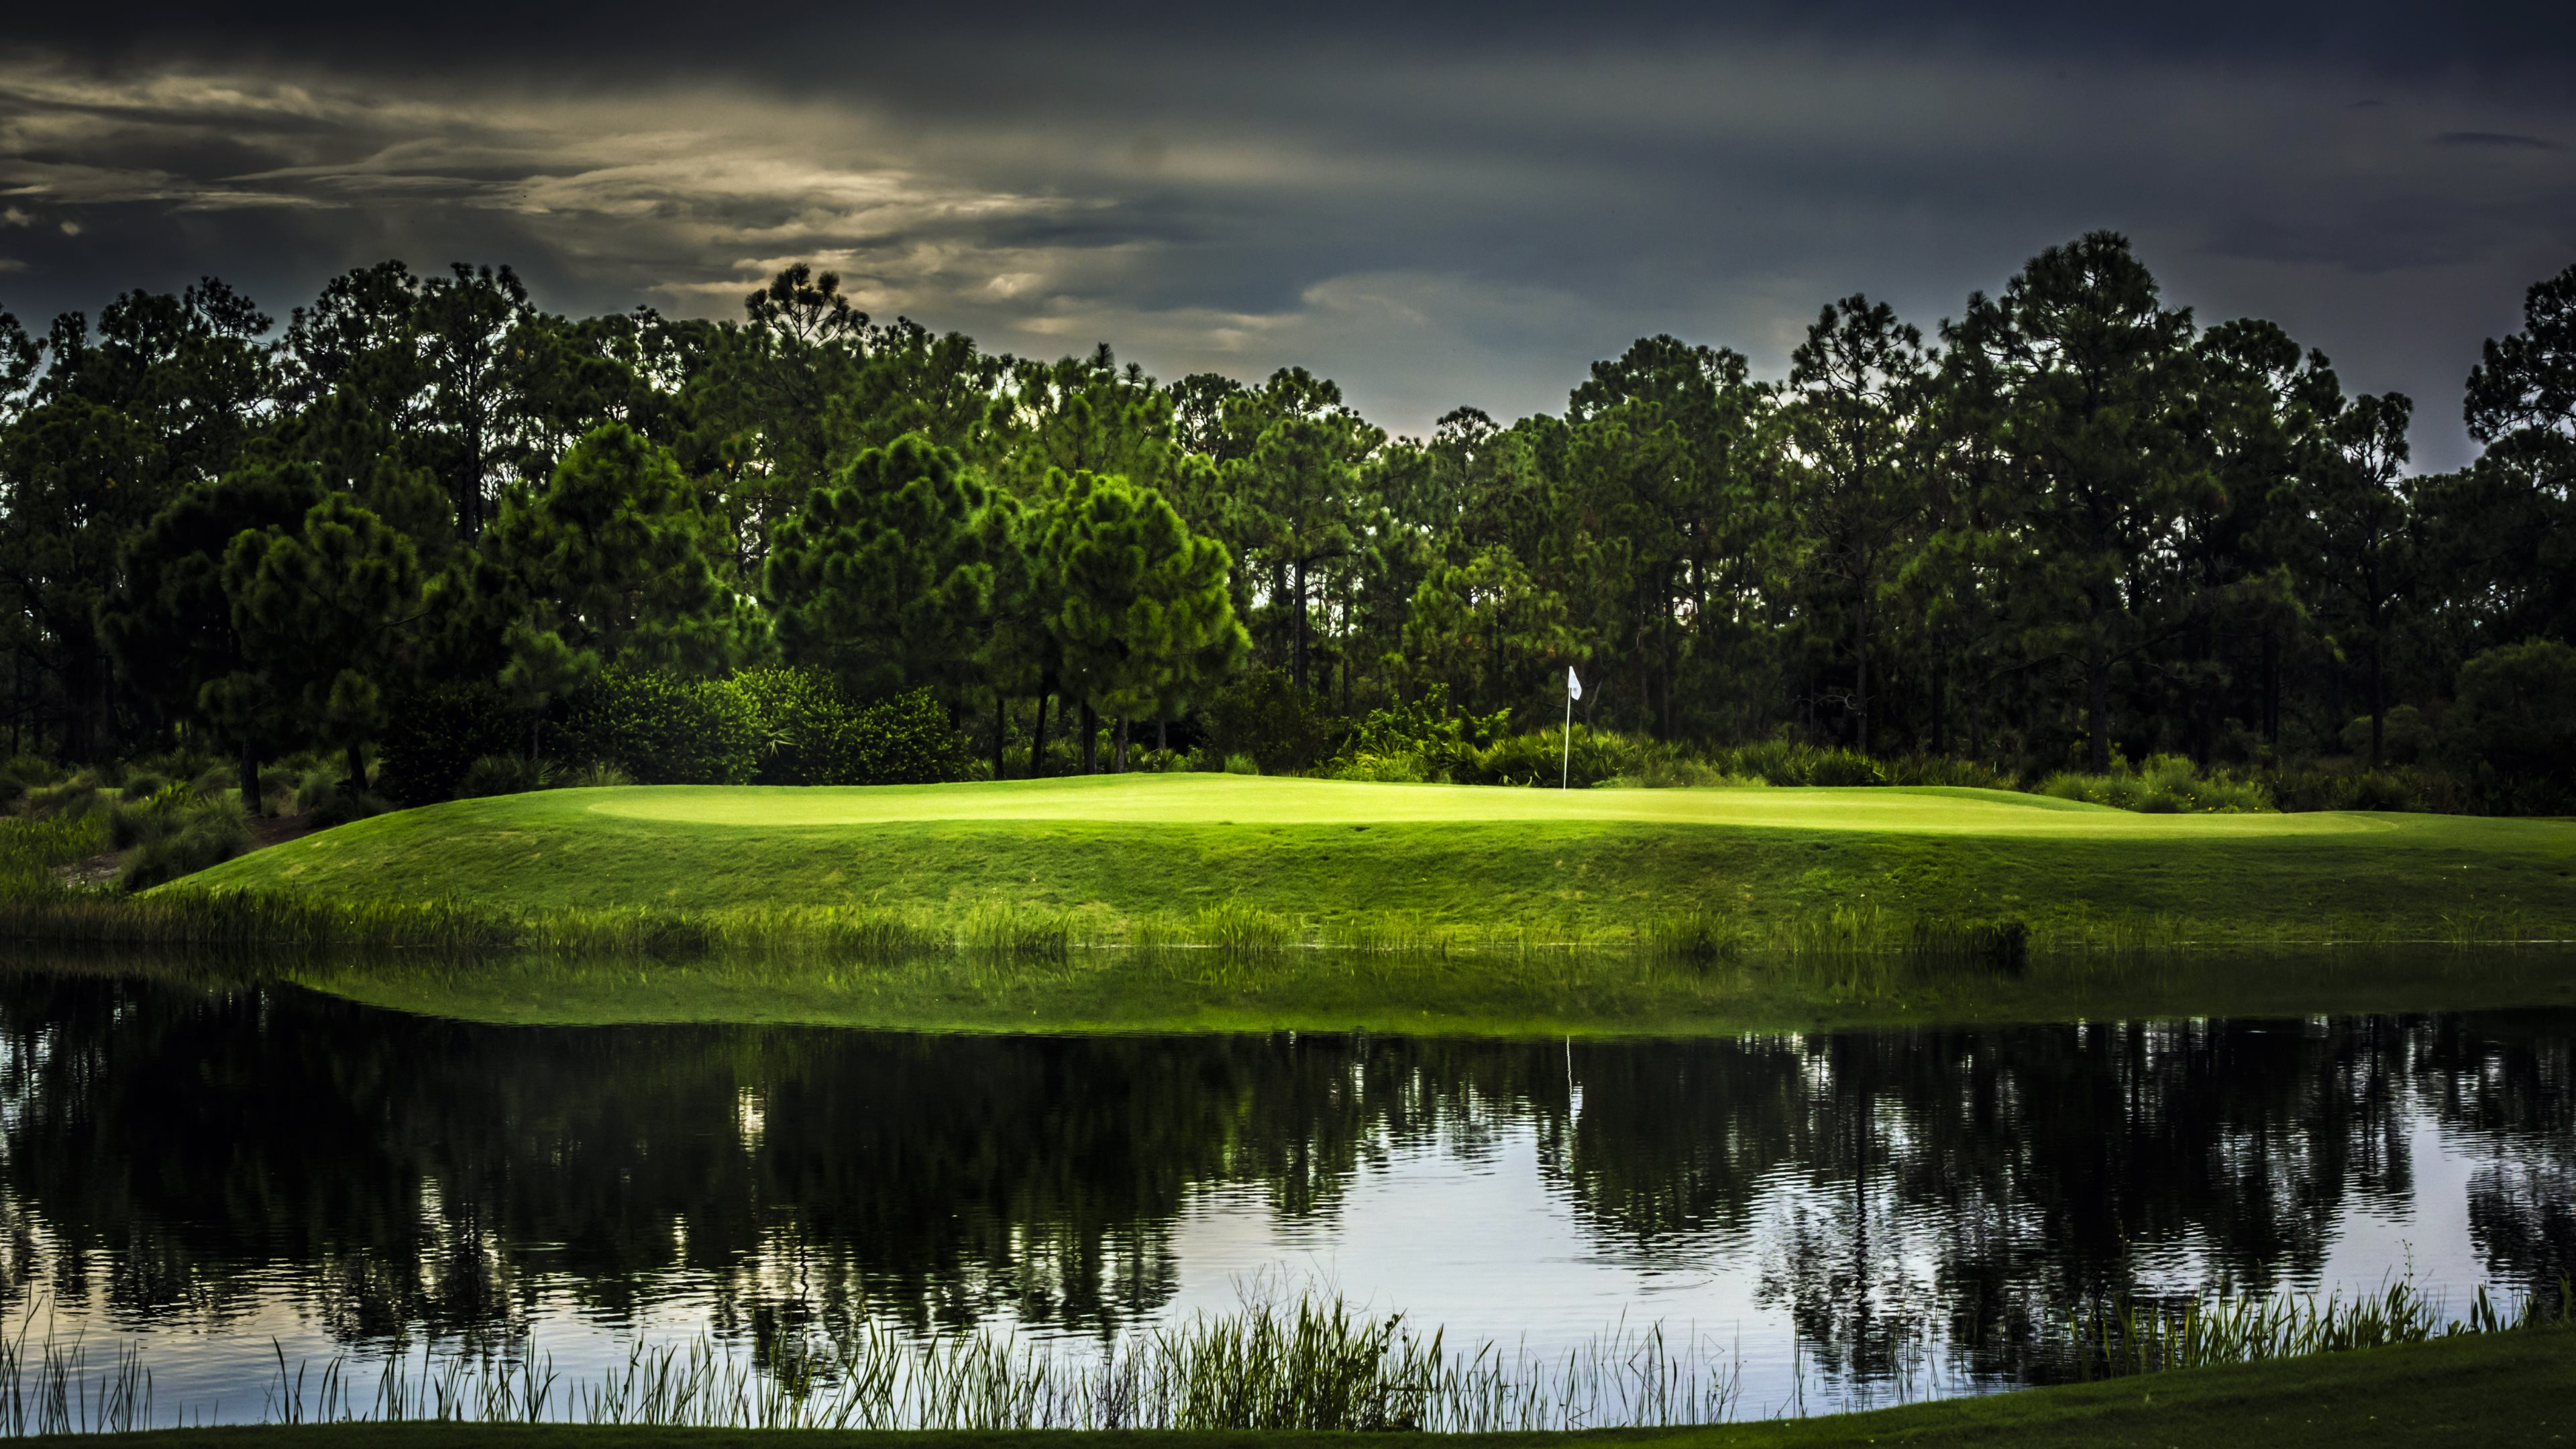 golf course wallpaper 1920x1080 wallpapersafari